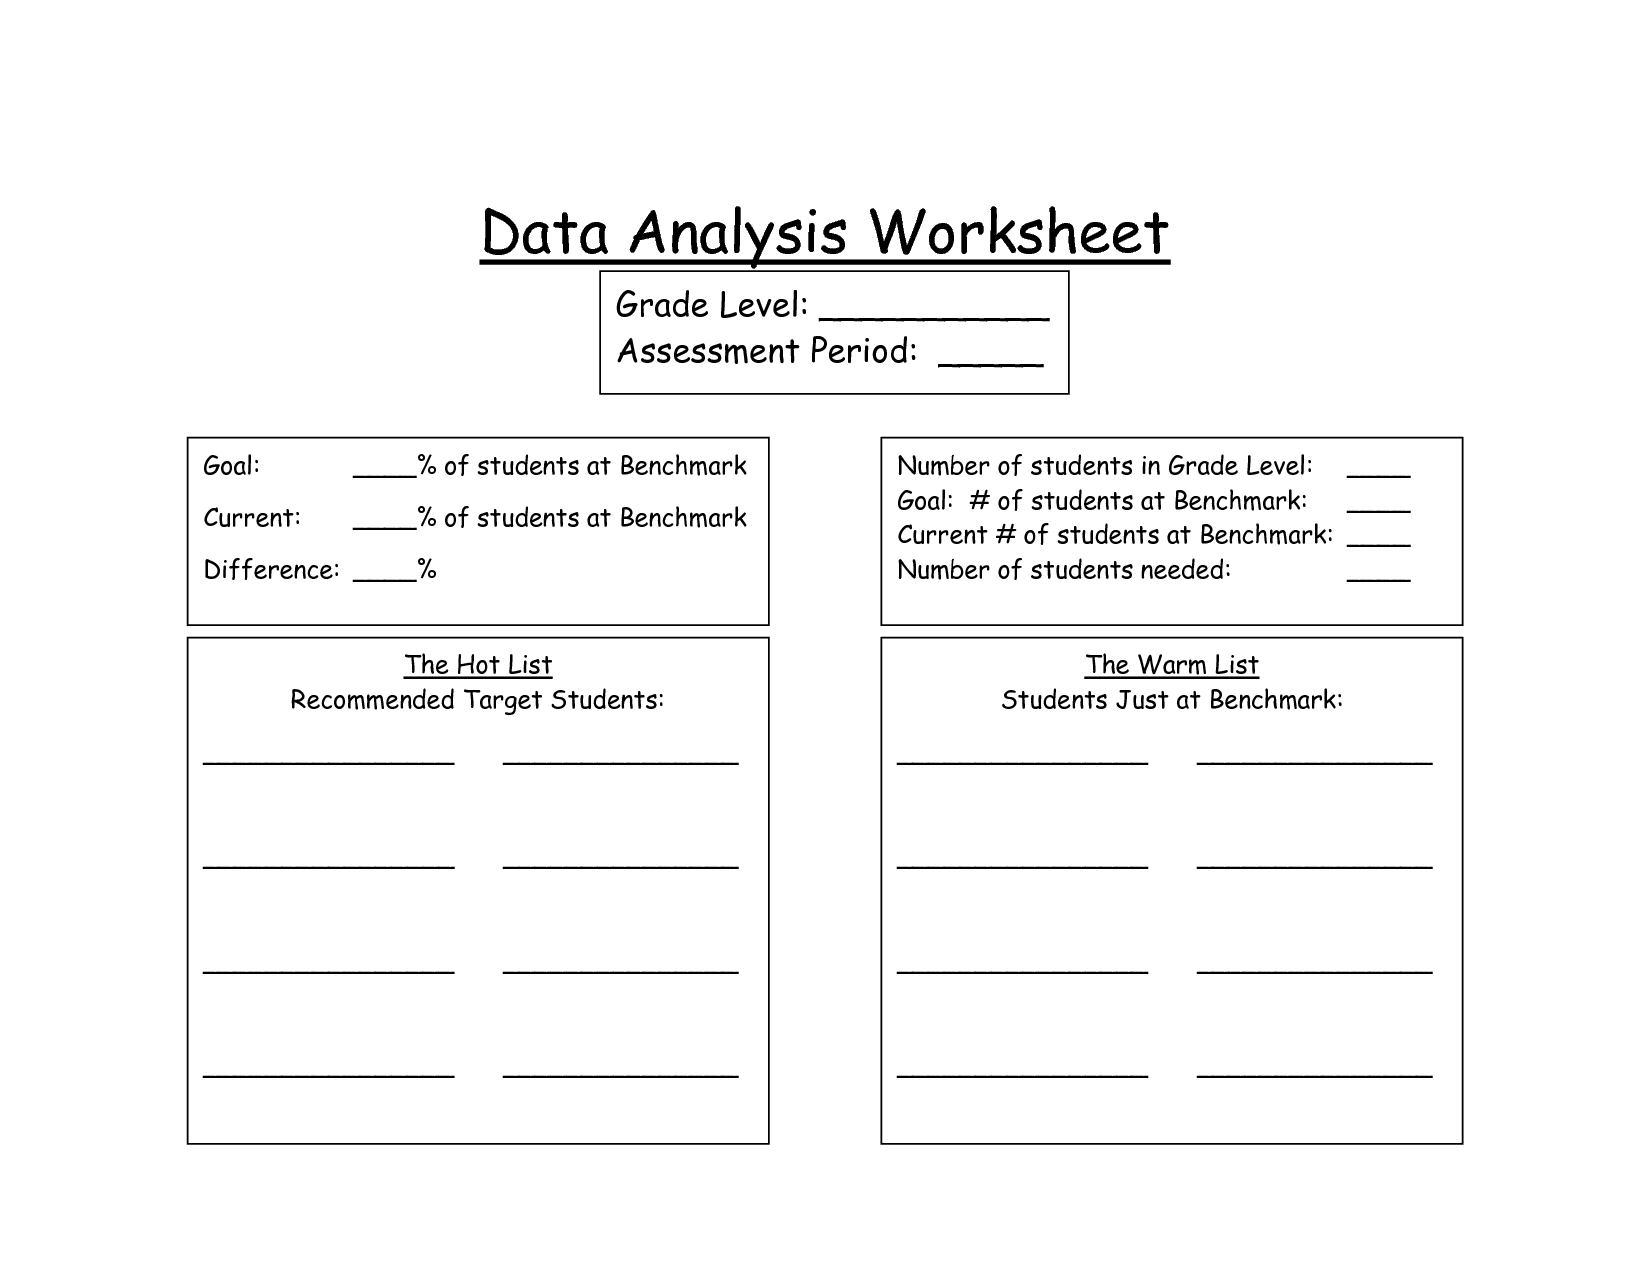 Dataysis Worksheet Worksheets For School